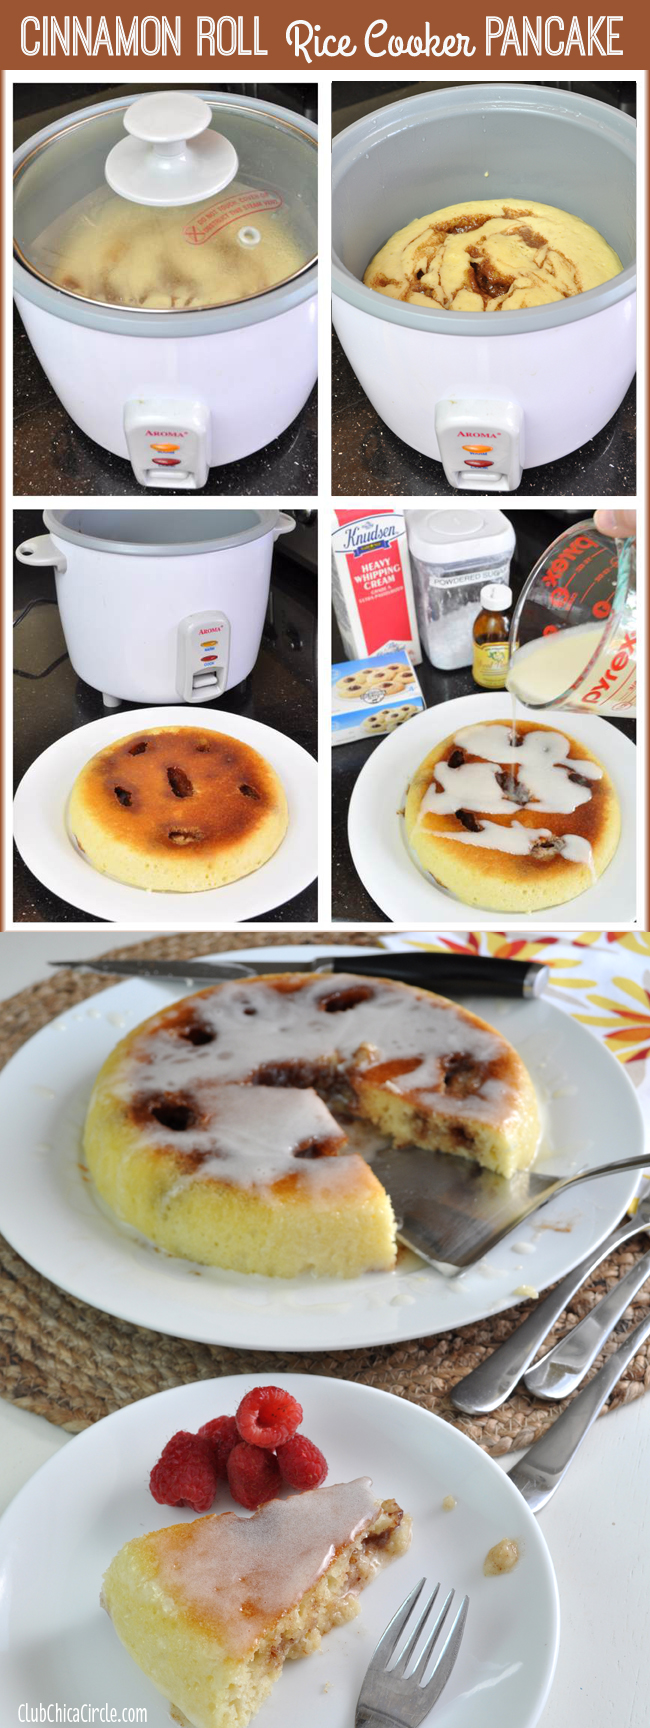 Cinnanon Roll Rice Cooker Pancake Easy Recipe Idea